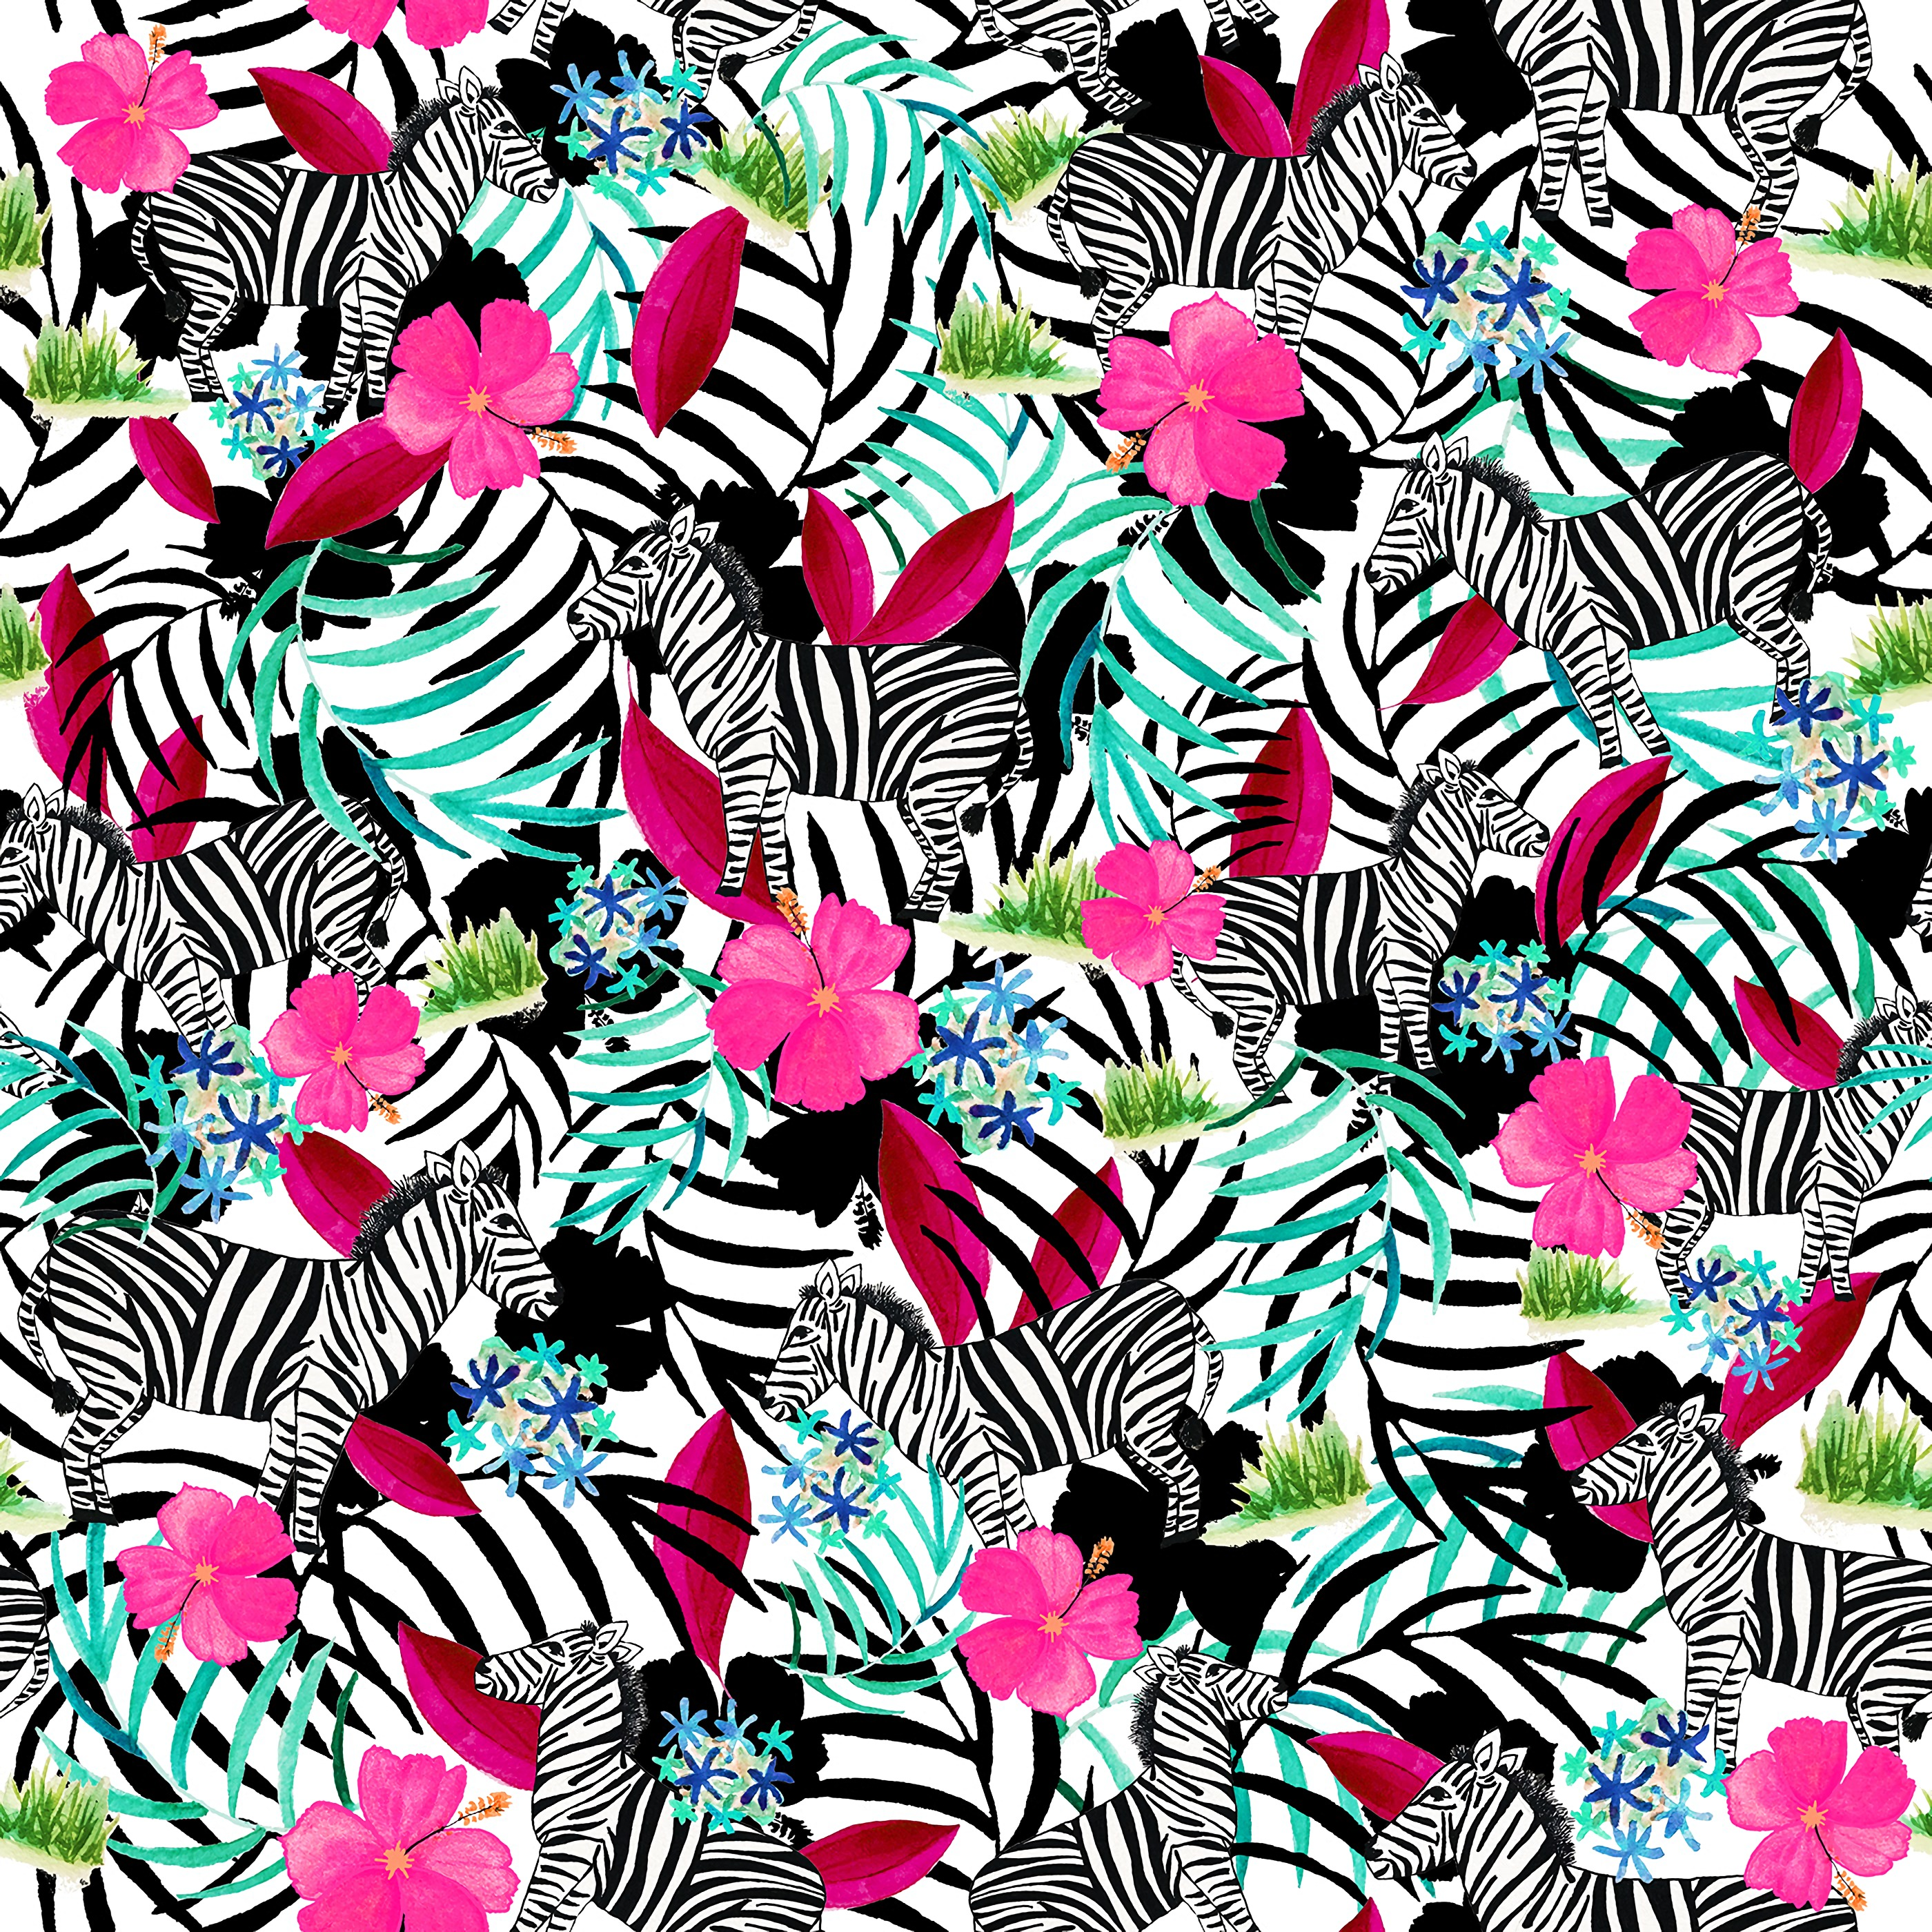 134692 download wallpaper Textures, Texture, Pattern, Leaves, Flowers, Zebra screensavers and pictures for free